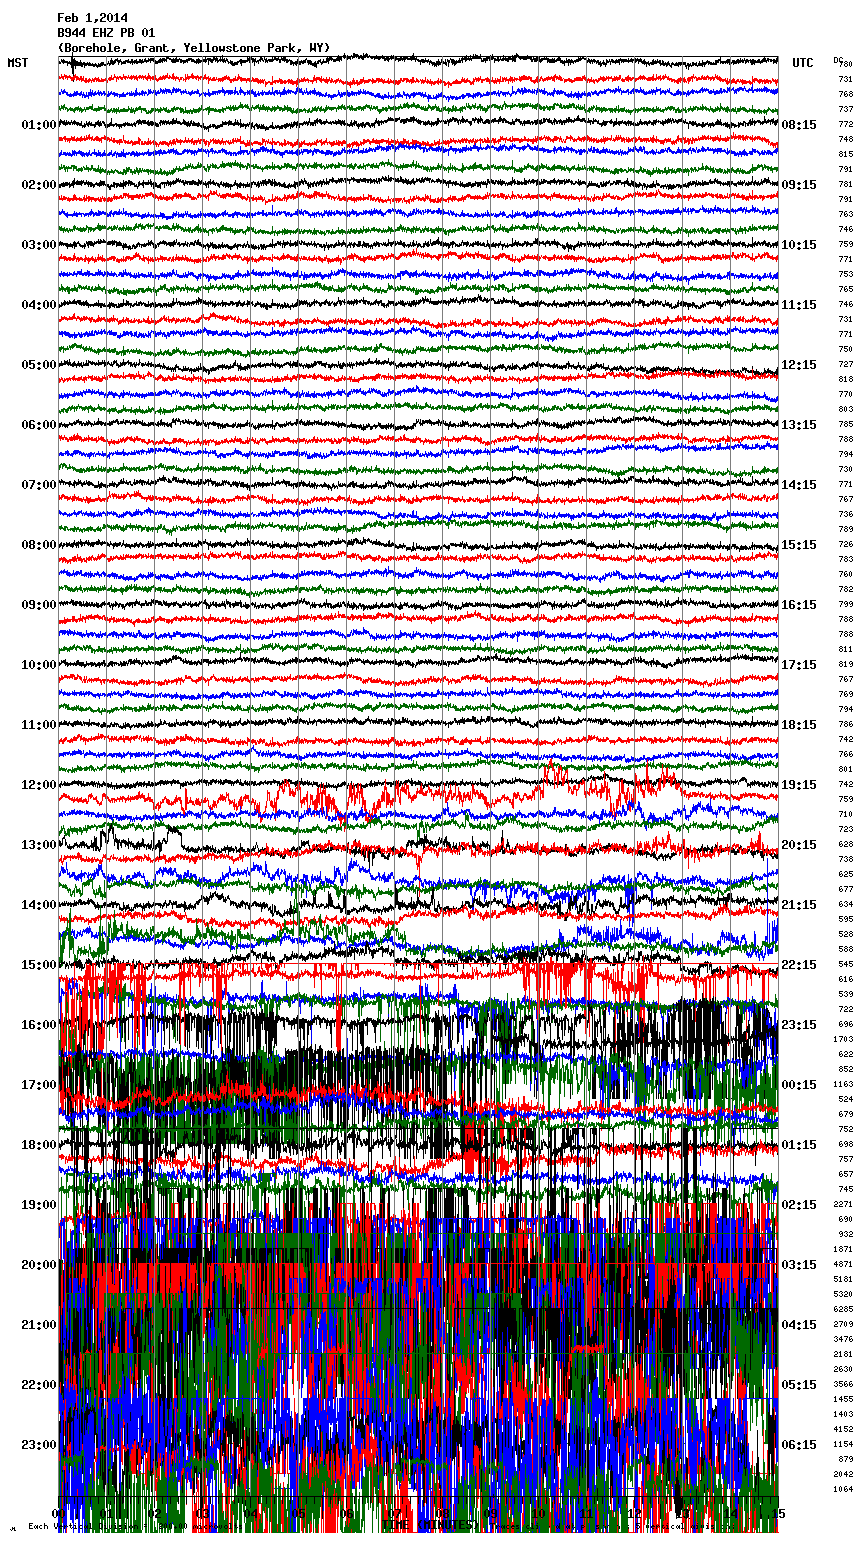 yellowstone earthquake pre